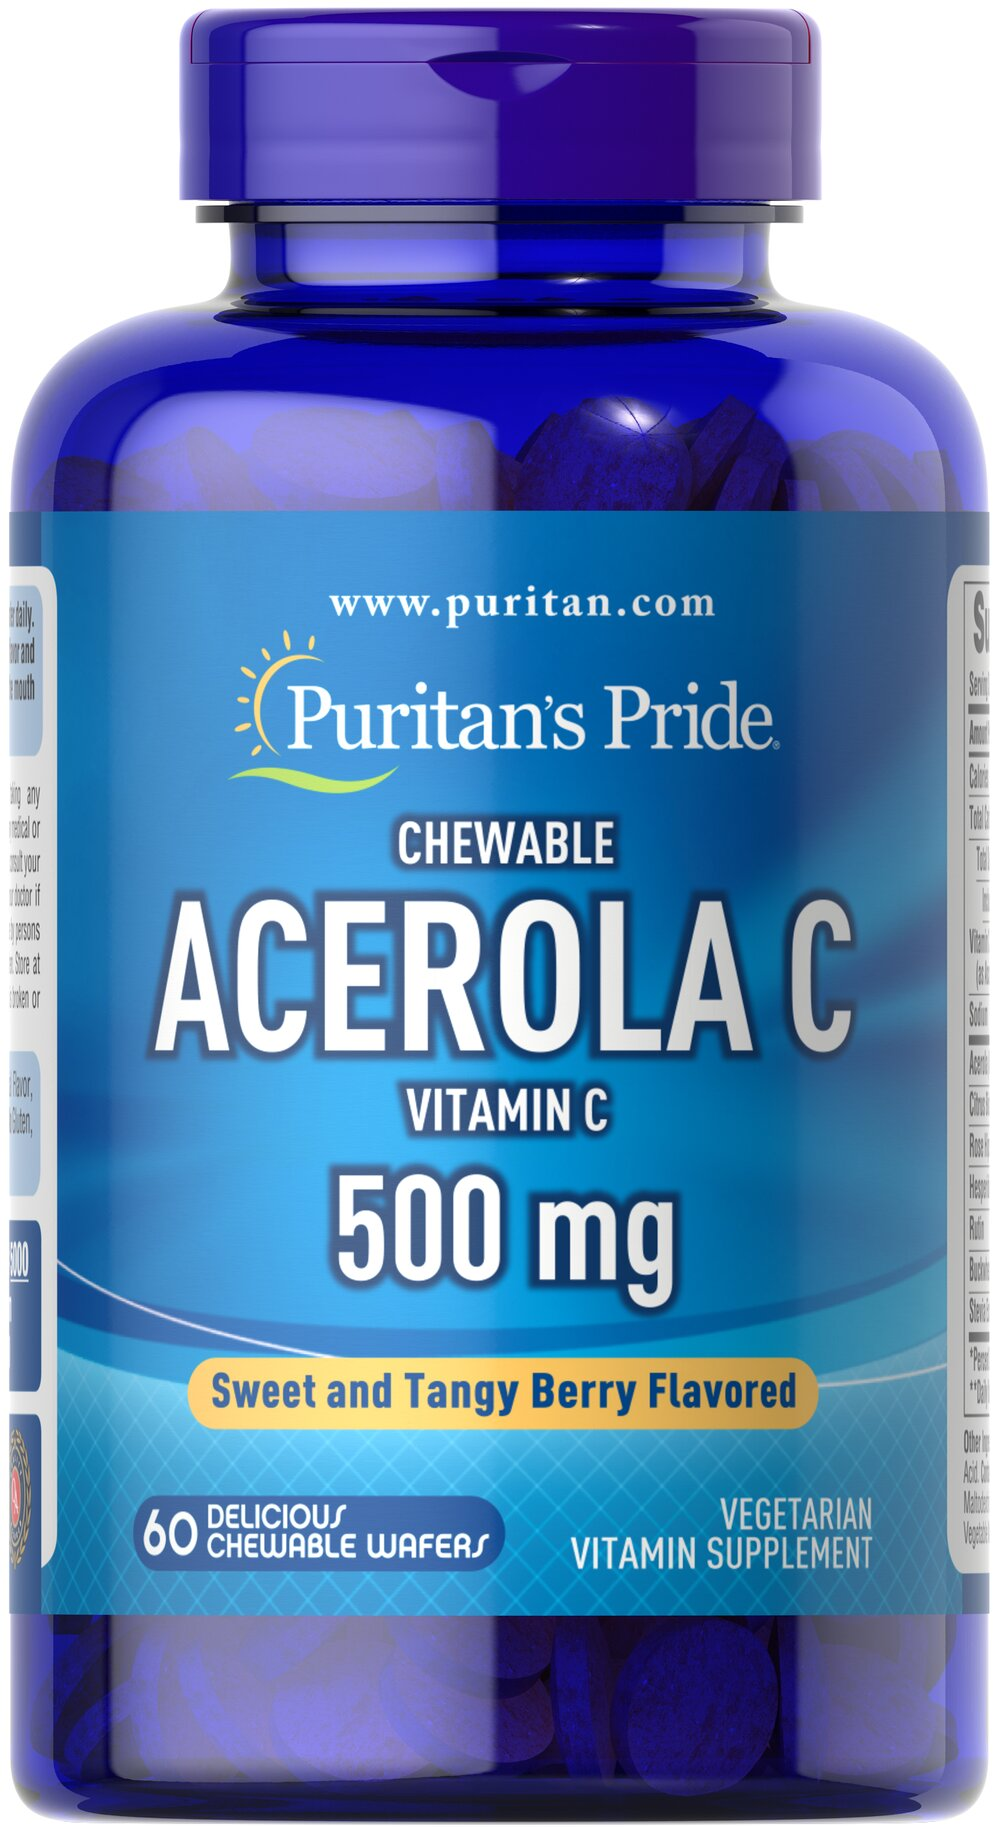 Chewable Acerola C 500 mg <p>Vitamin C is essential to many functions in the body and is one of the leading vitamins for immune support.**</p><p>Offers superior antioxidant support.**</p><p>Supports healthy immune function and promotes well-being.**</p><p>Forms the molecular basis for healthy skin, hair and nails.**</p> 60 Chewables 500 mg